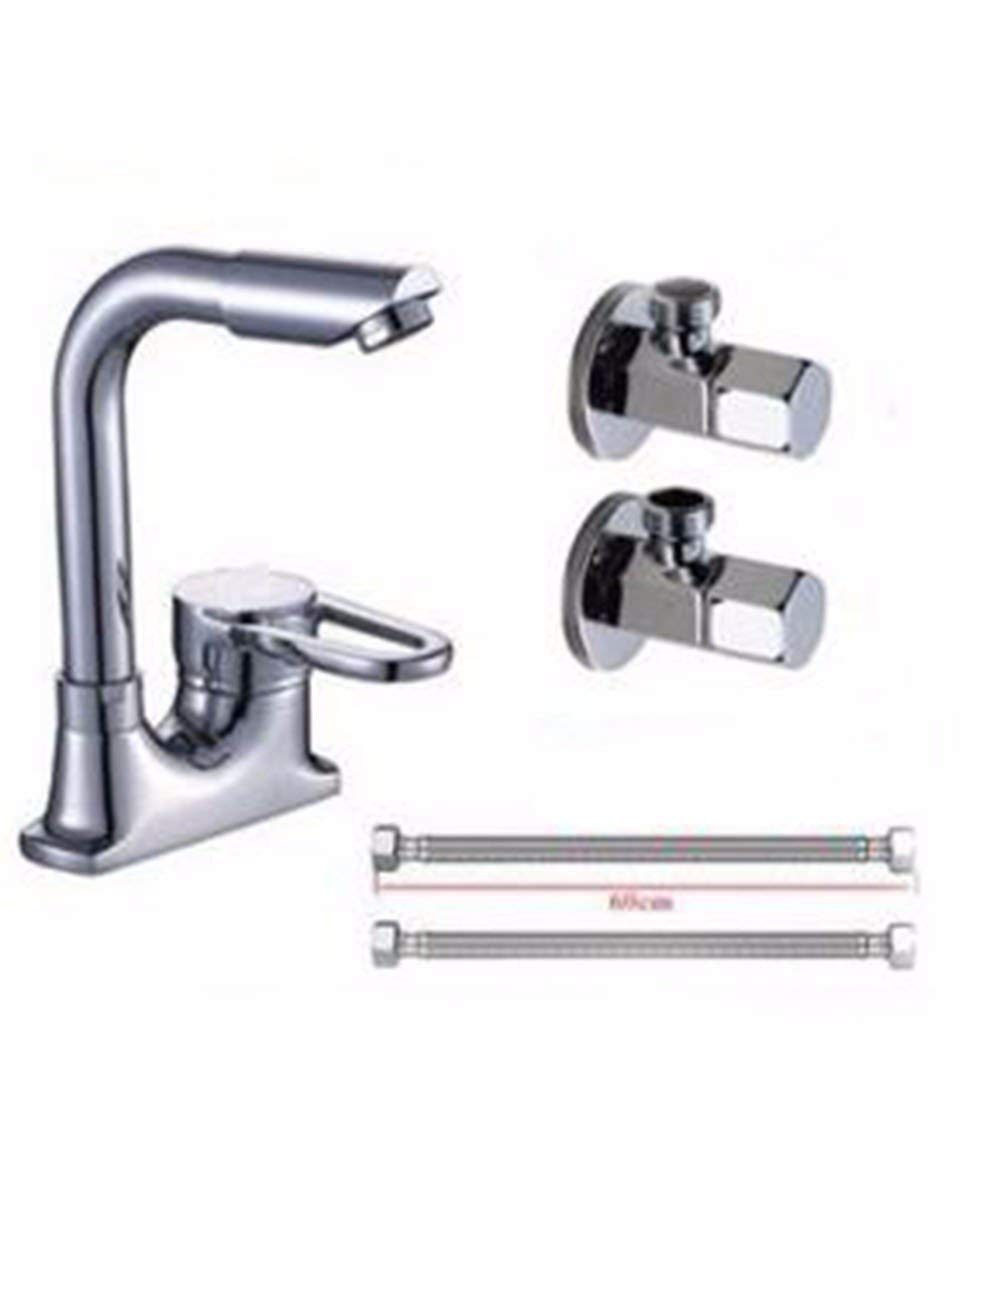 Basin Mixer Tap Bathroom Sink Faucet The copper 2-hole basin mixer, you can rotate the hot and cold basin faucet, washing his face lowered basin faucet,C (Color : A)